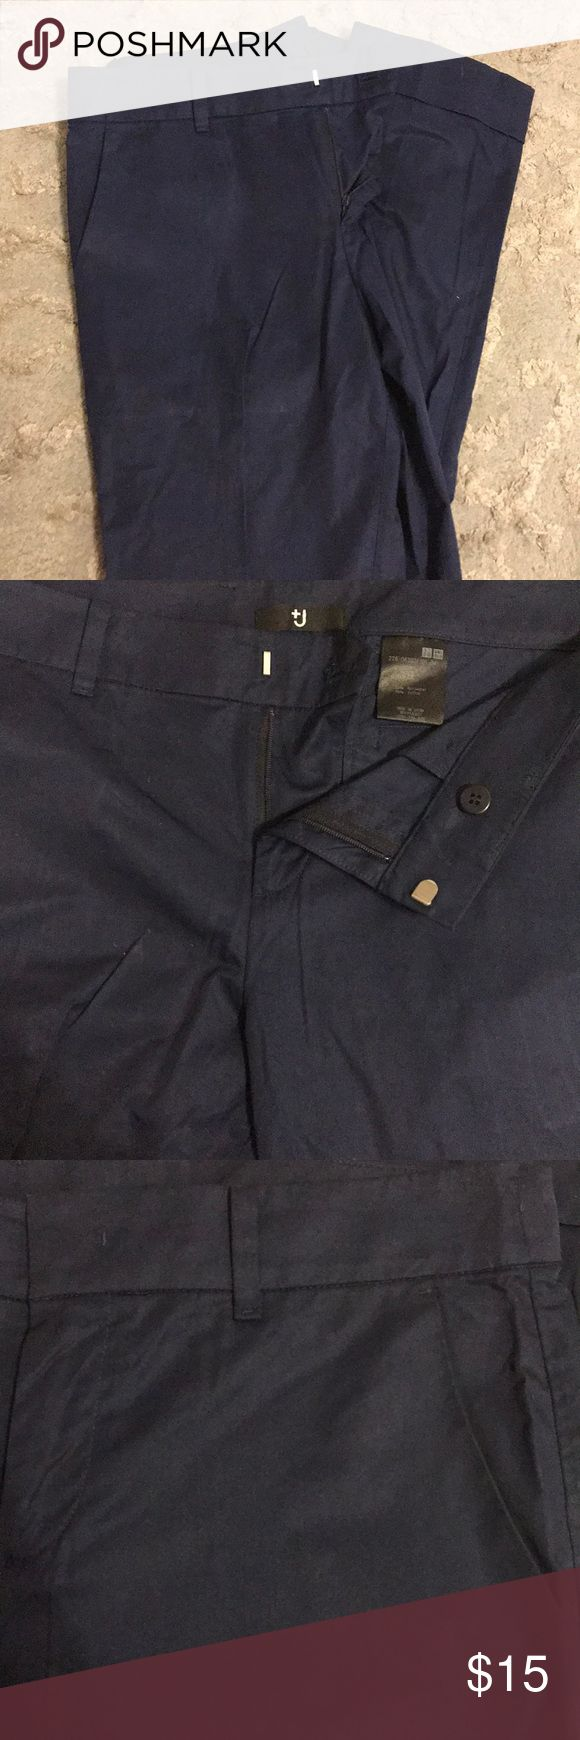 Navy Blue Uniqlo Size 2 Slacks -Never Worn! Received these as a gift. Never able to wear them because they were too small from the start. They are so soft and comfy on the skin. Cute slits in the front and cuff at the bottom. Perfect condition! Uniqlo Pants